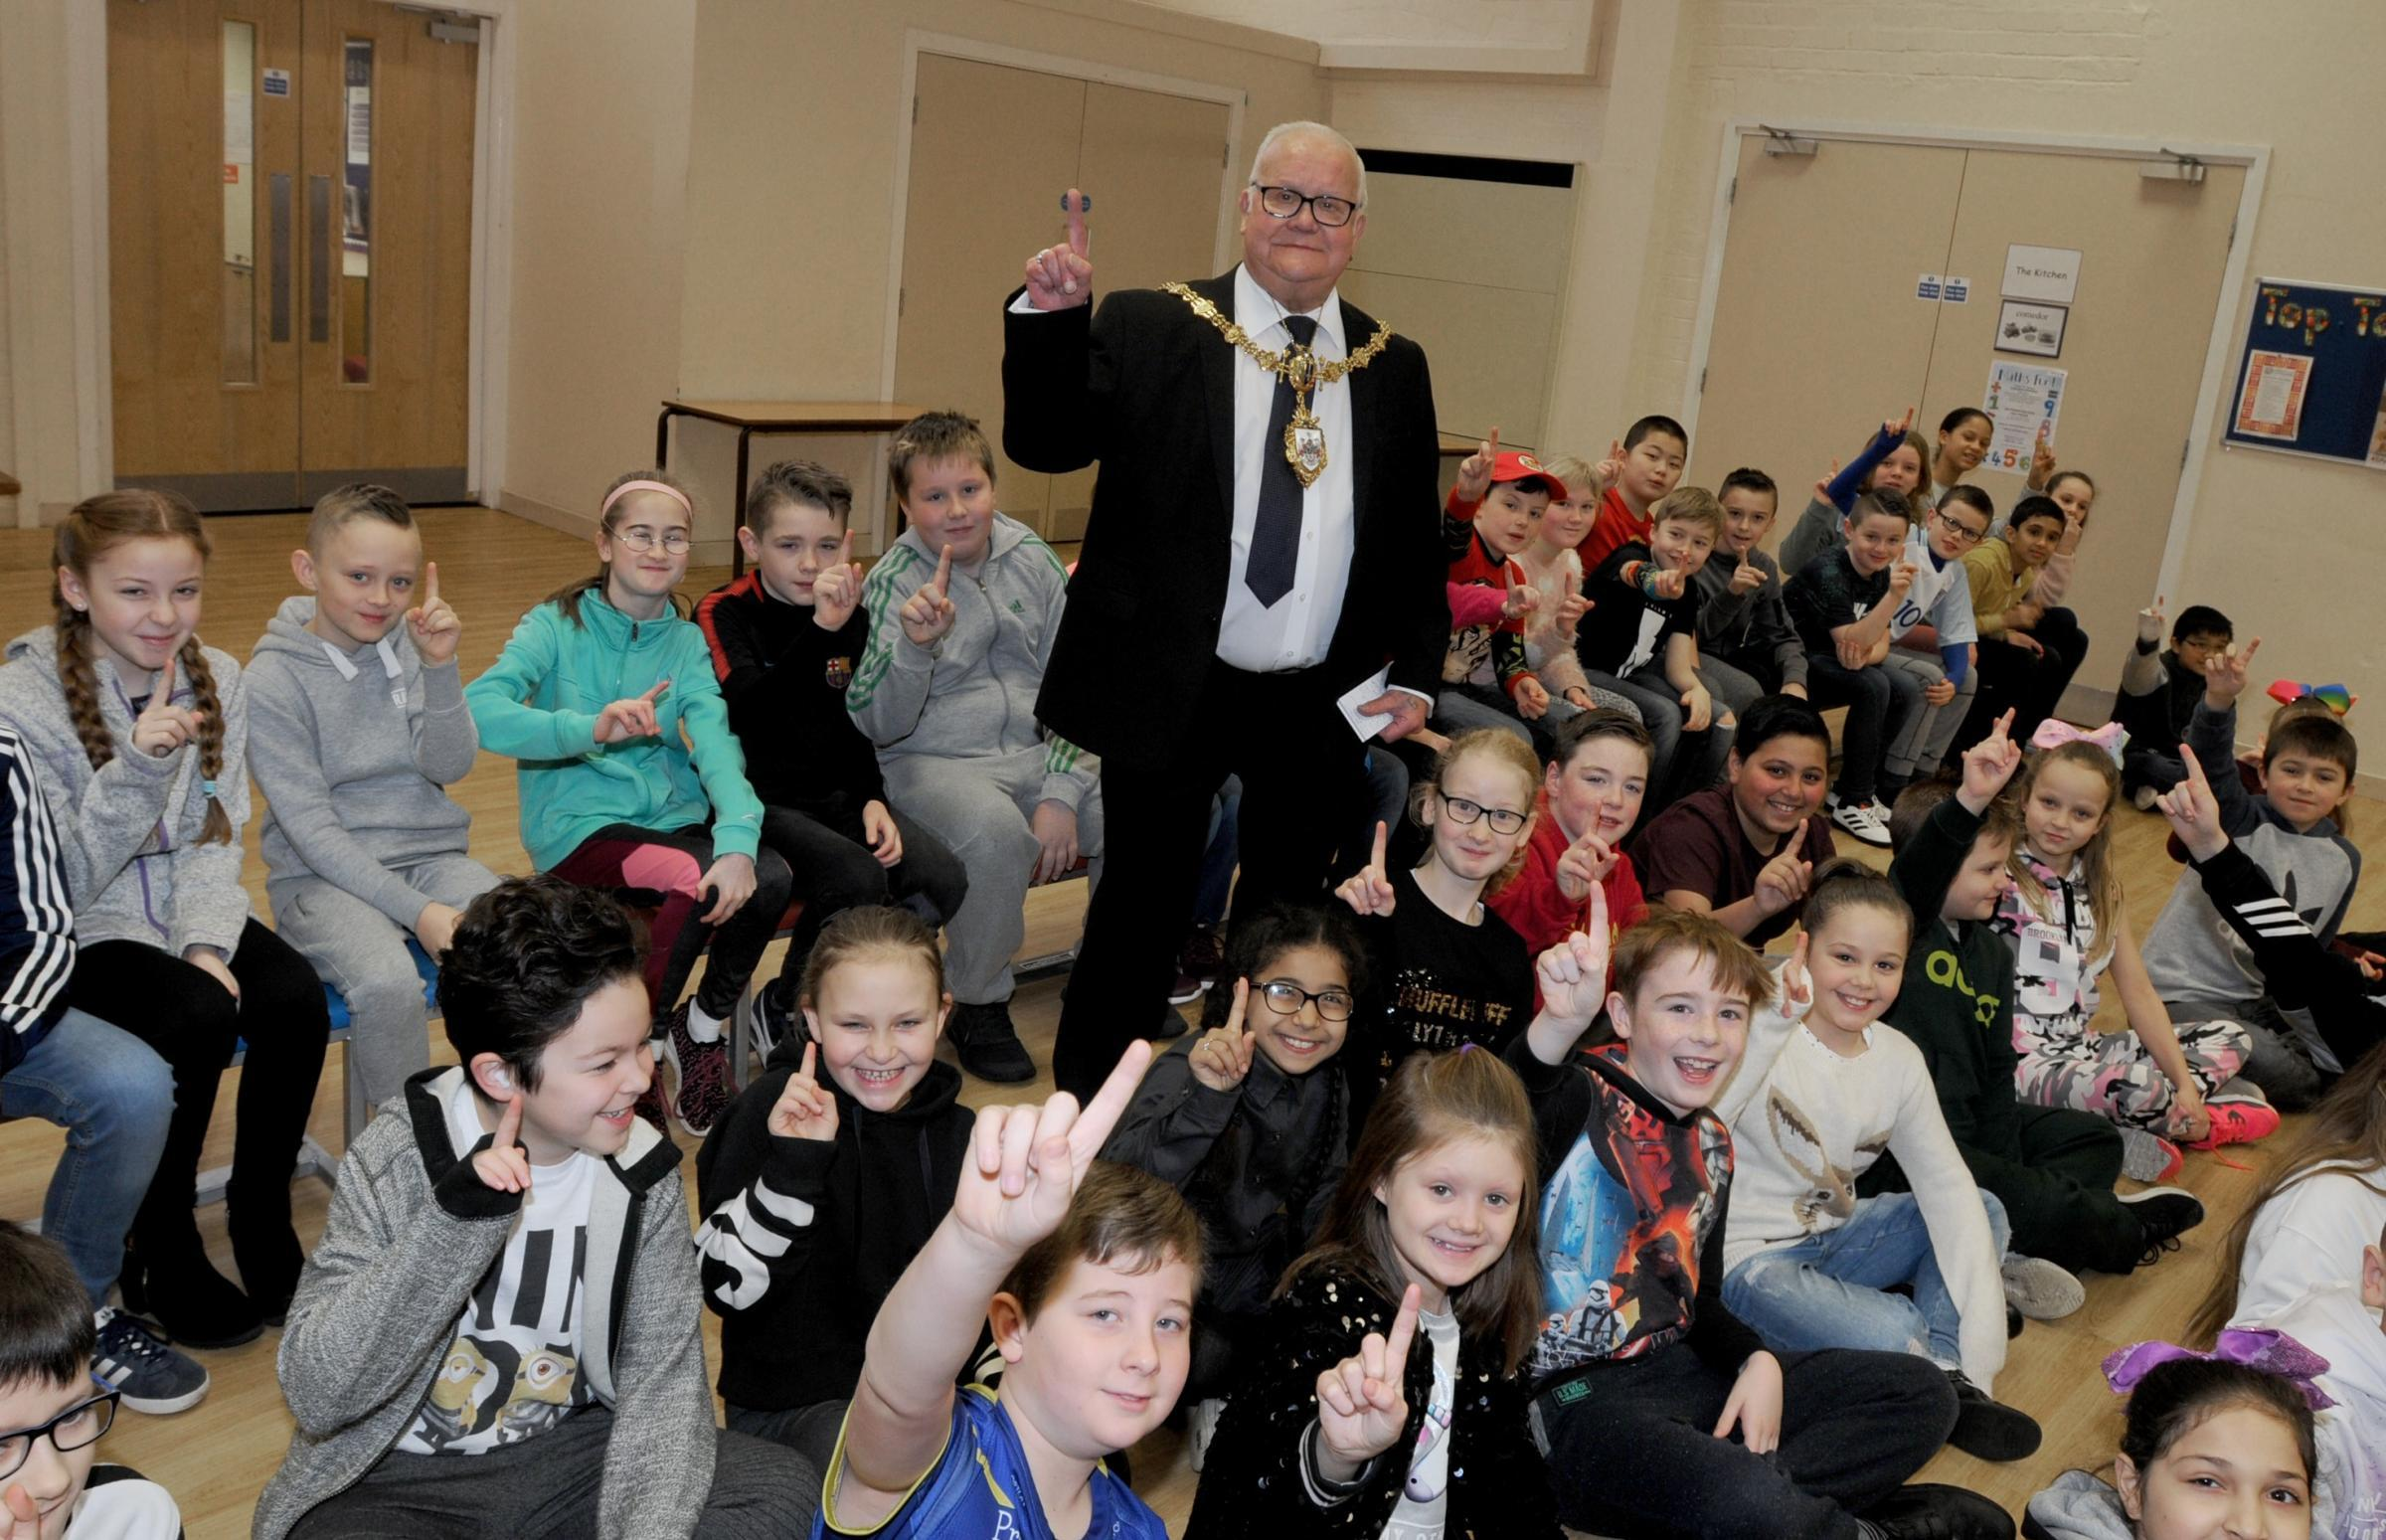 Mayor Cllr Les Morgan with pupils at Latchford St James CE Primary School